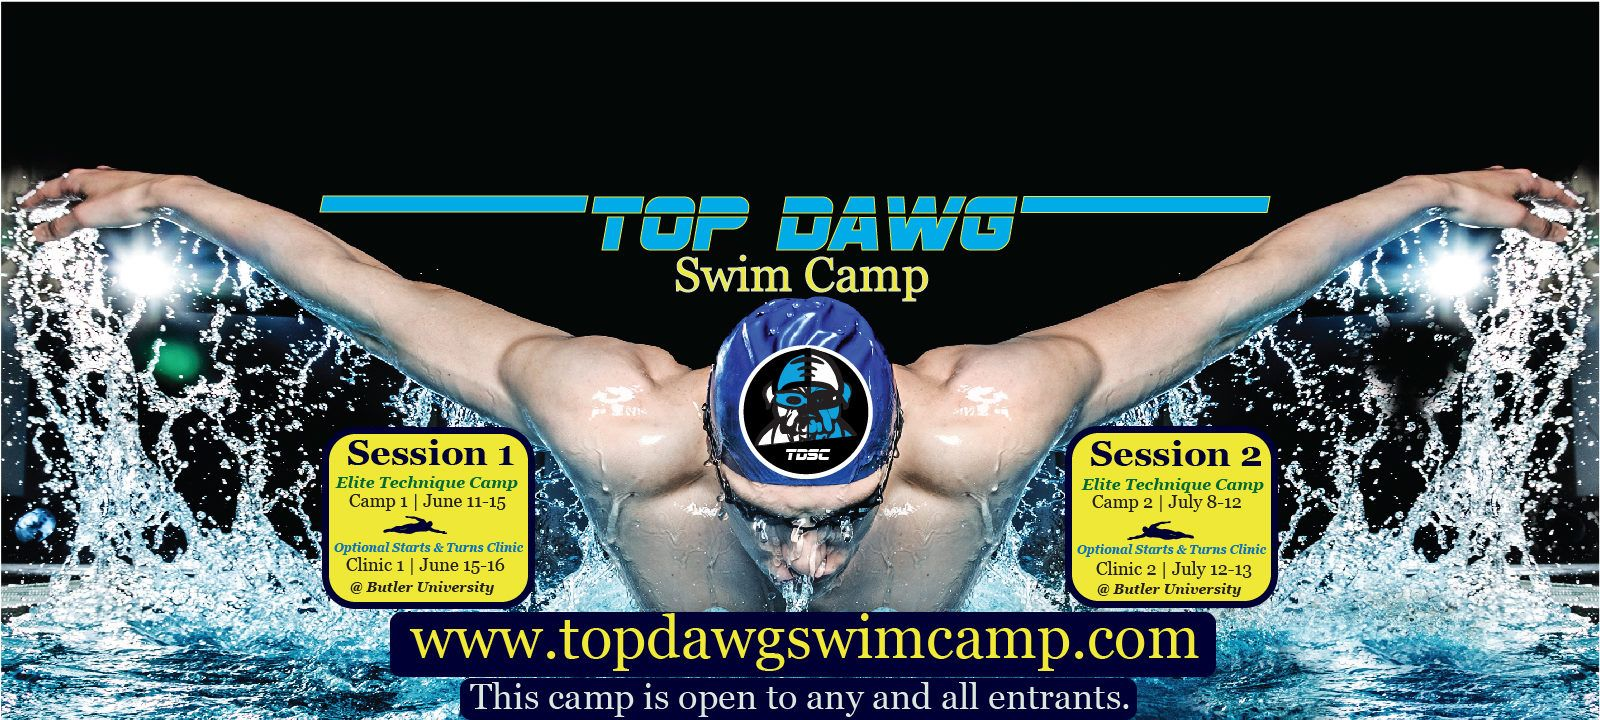 Top Dawg Swim Camp at Butler University – Sign Up Today